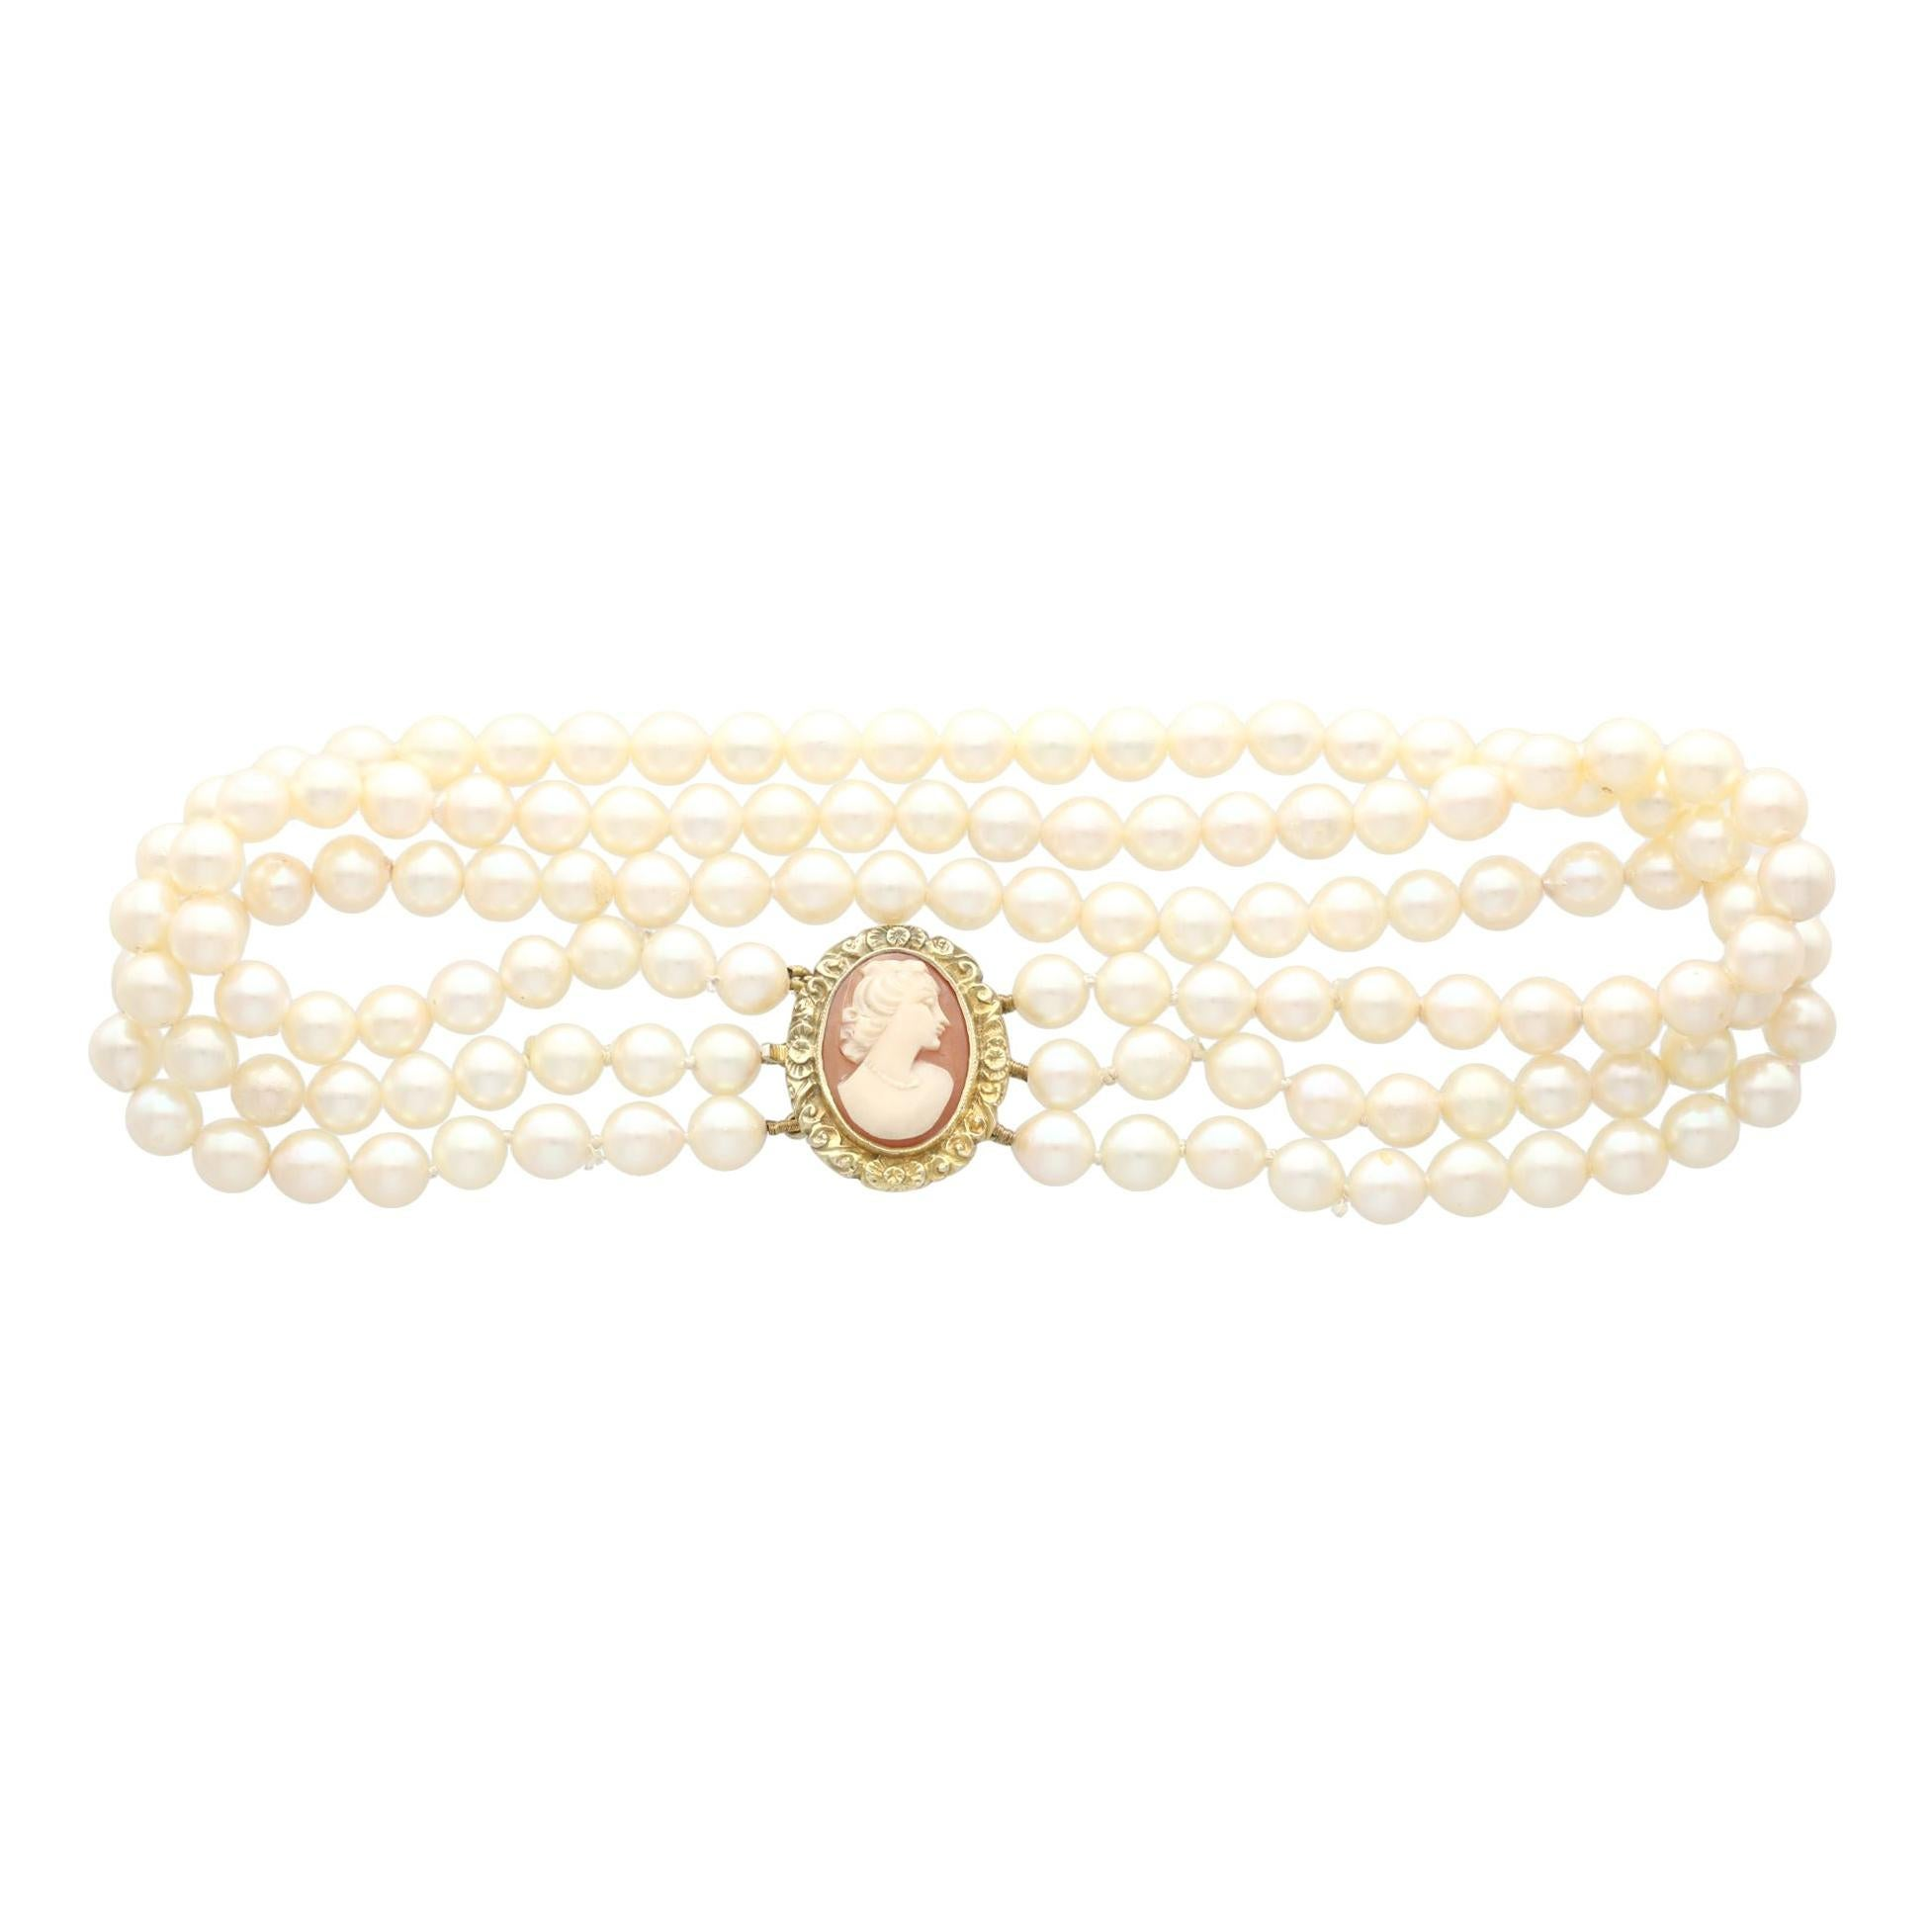 Vintage Triple Strand Cultured Pearl Choker and 9 Karat Yellow Gold Cameo Clasp